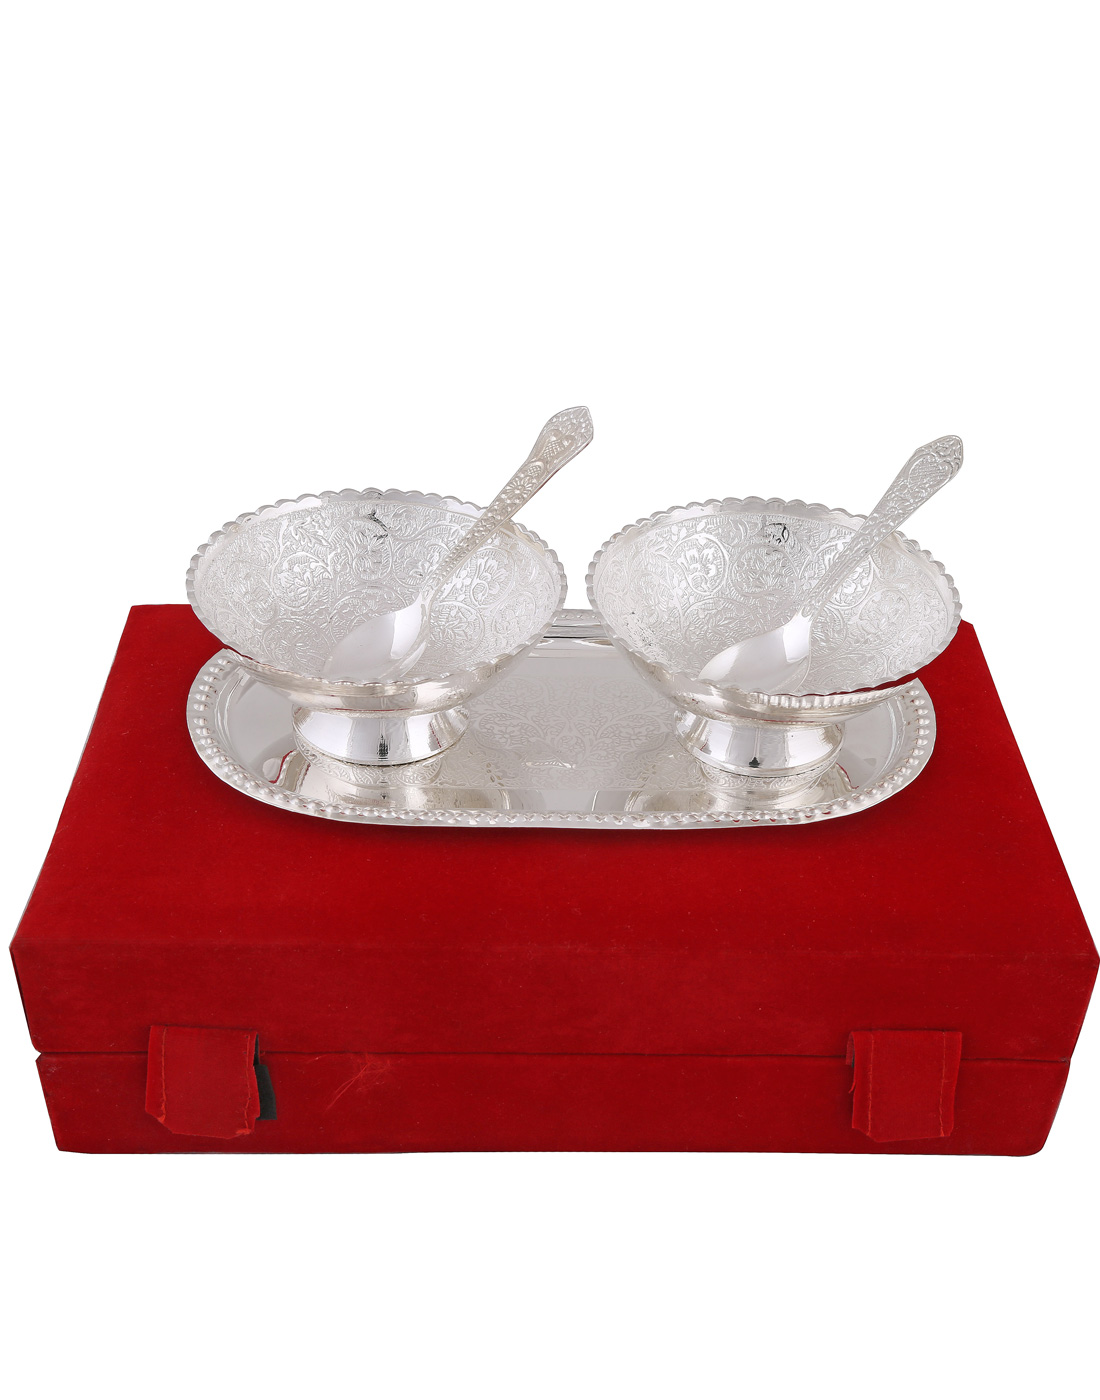 BrassValue Silver Plated 2 Brass Bowls   Spoon Set With Tray